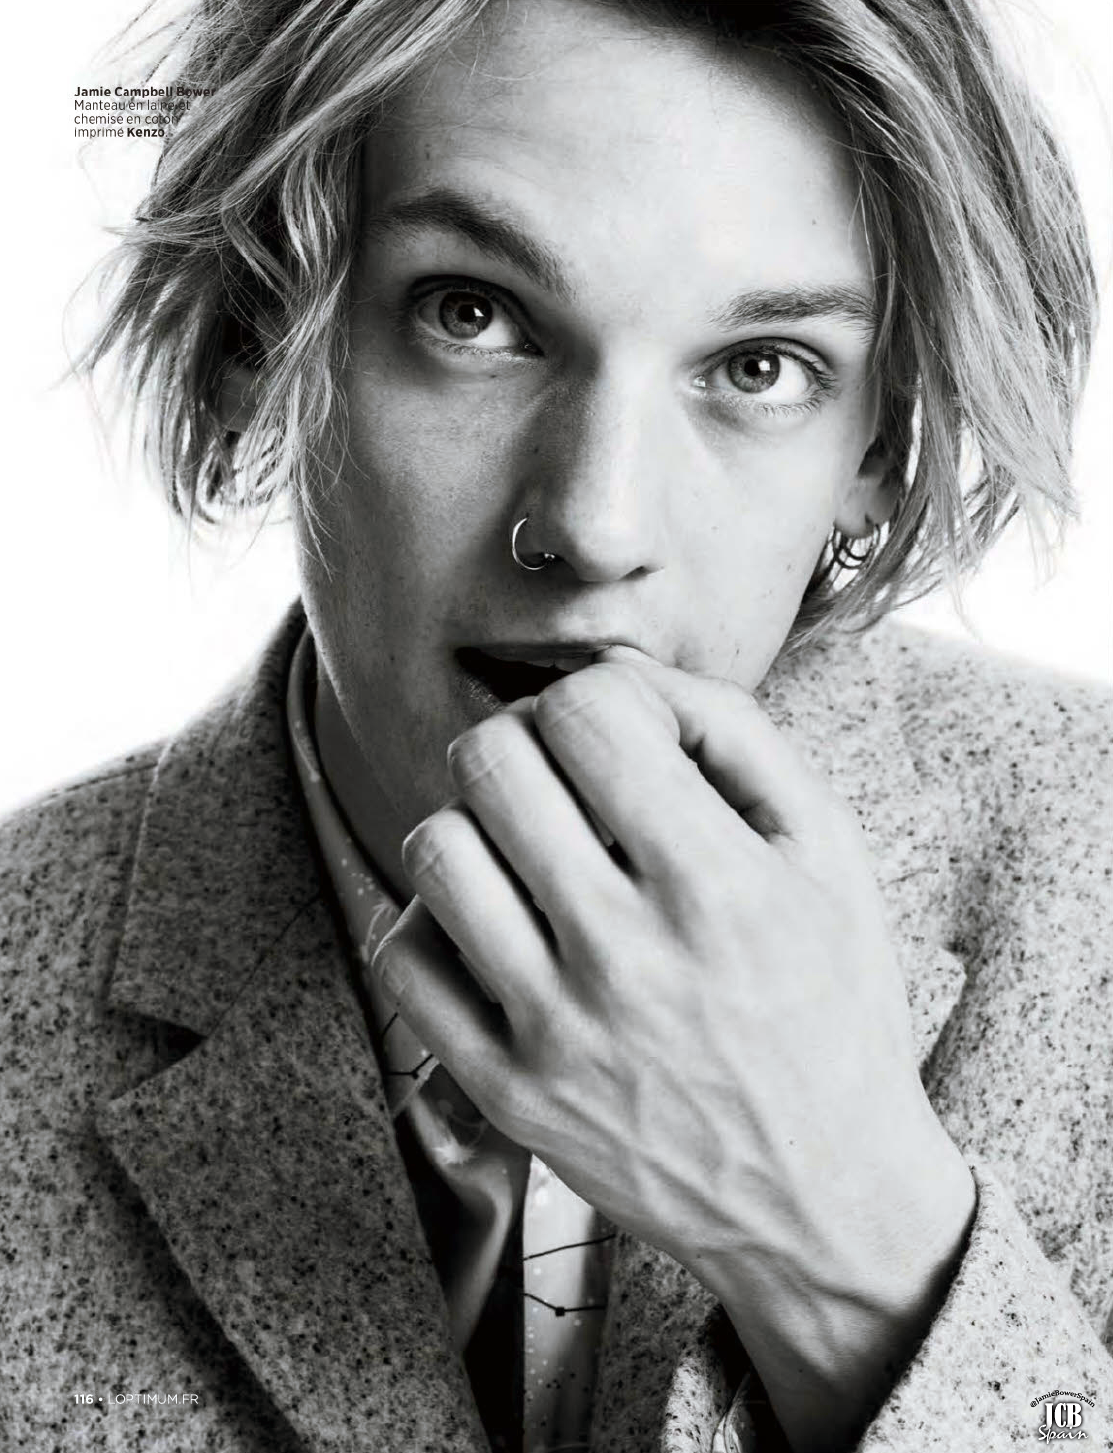 Jamie-Campbell-Bower-fantastic-style-wallpaper-wp5208099